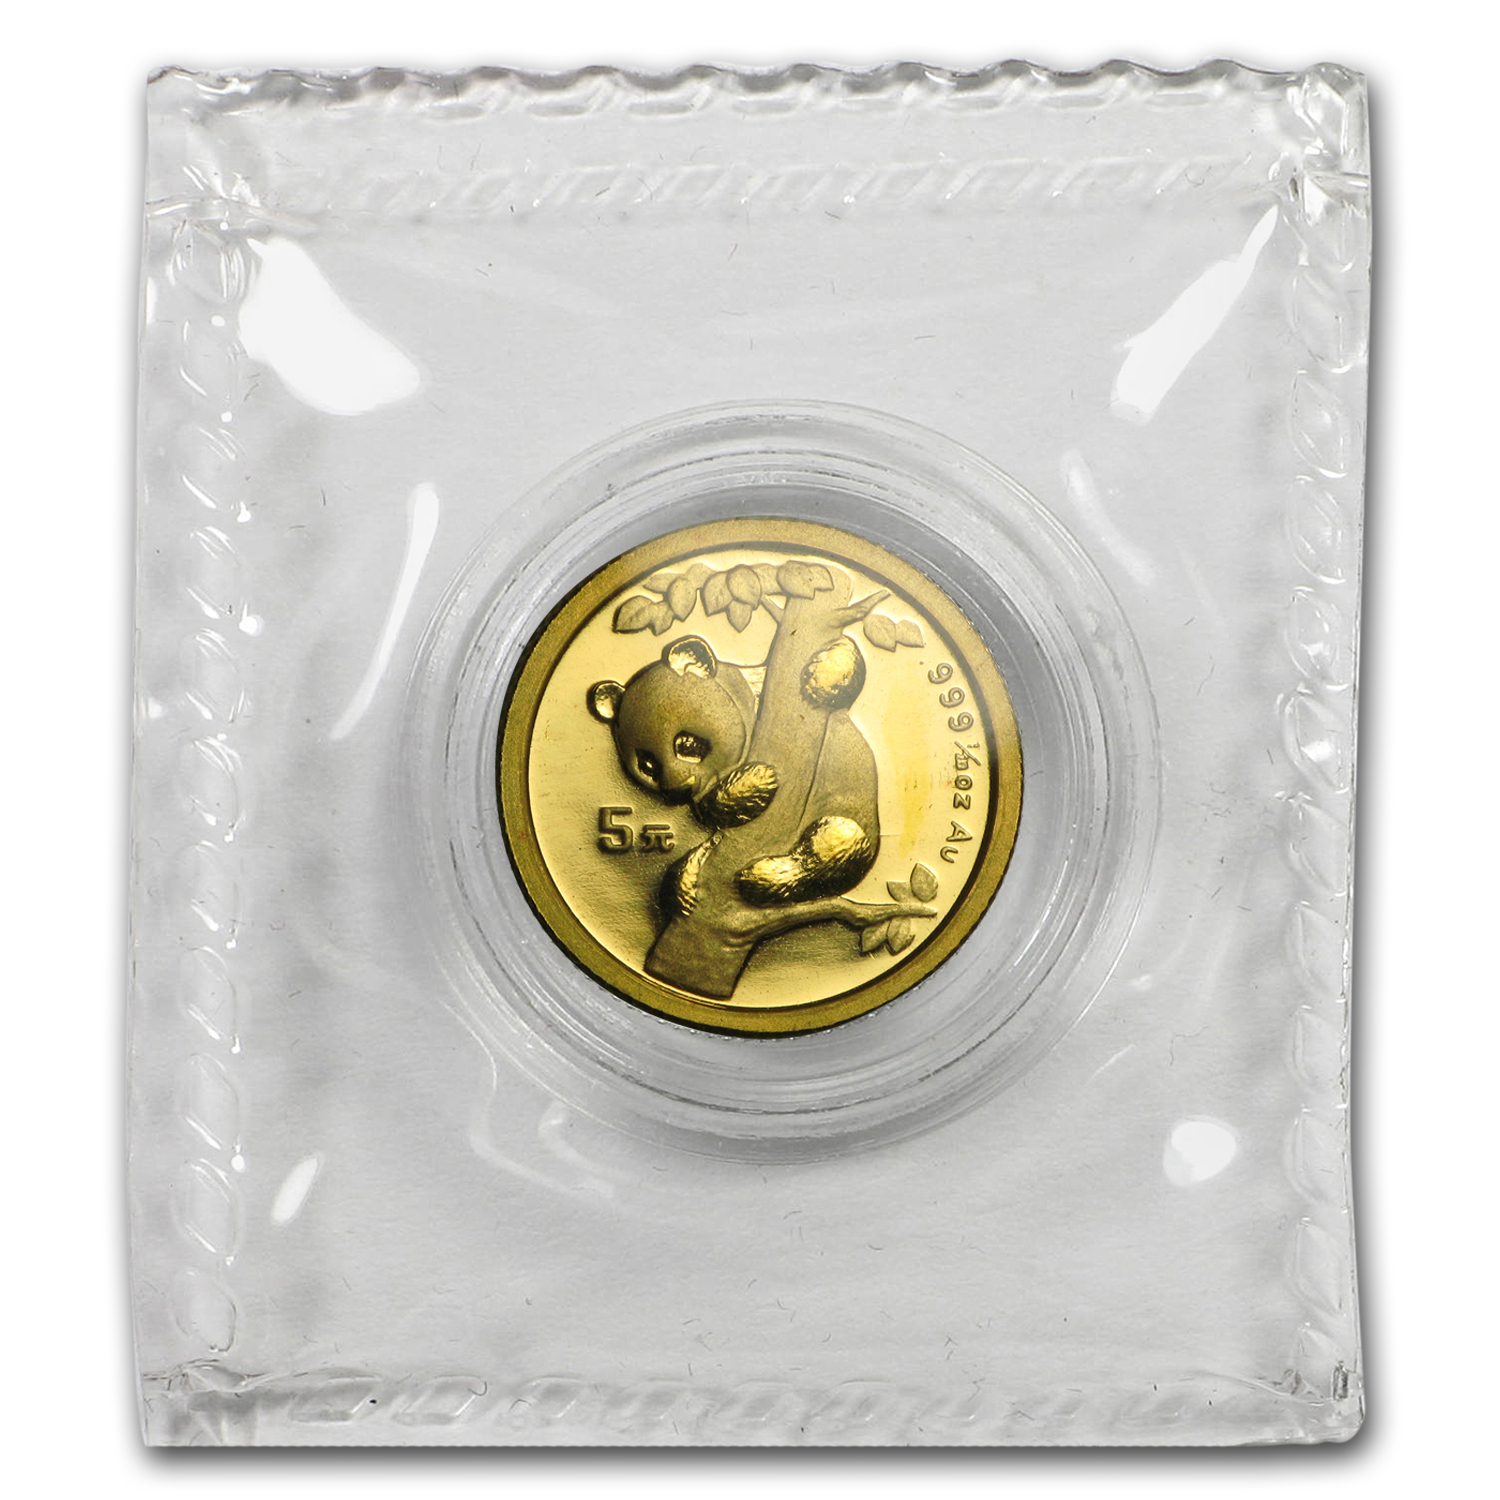 1996 (1/20 oz) Gold Chinese Pandas - Small Date (Sealed)